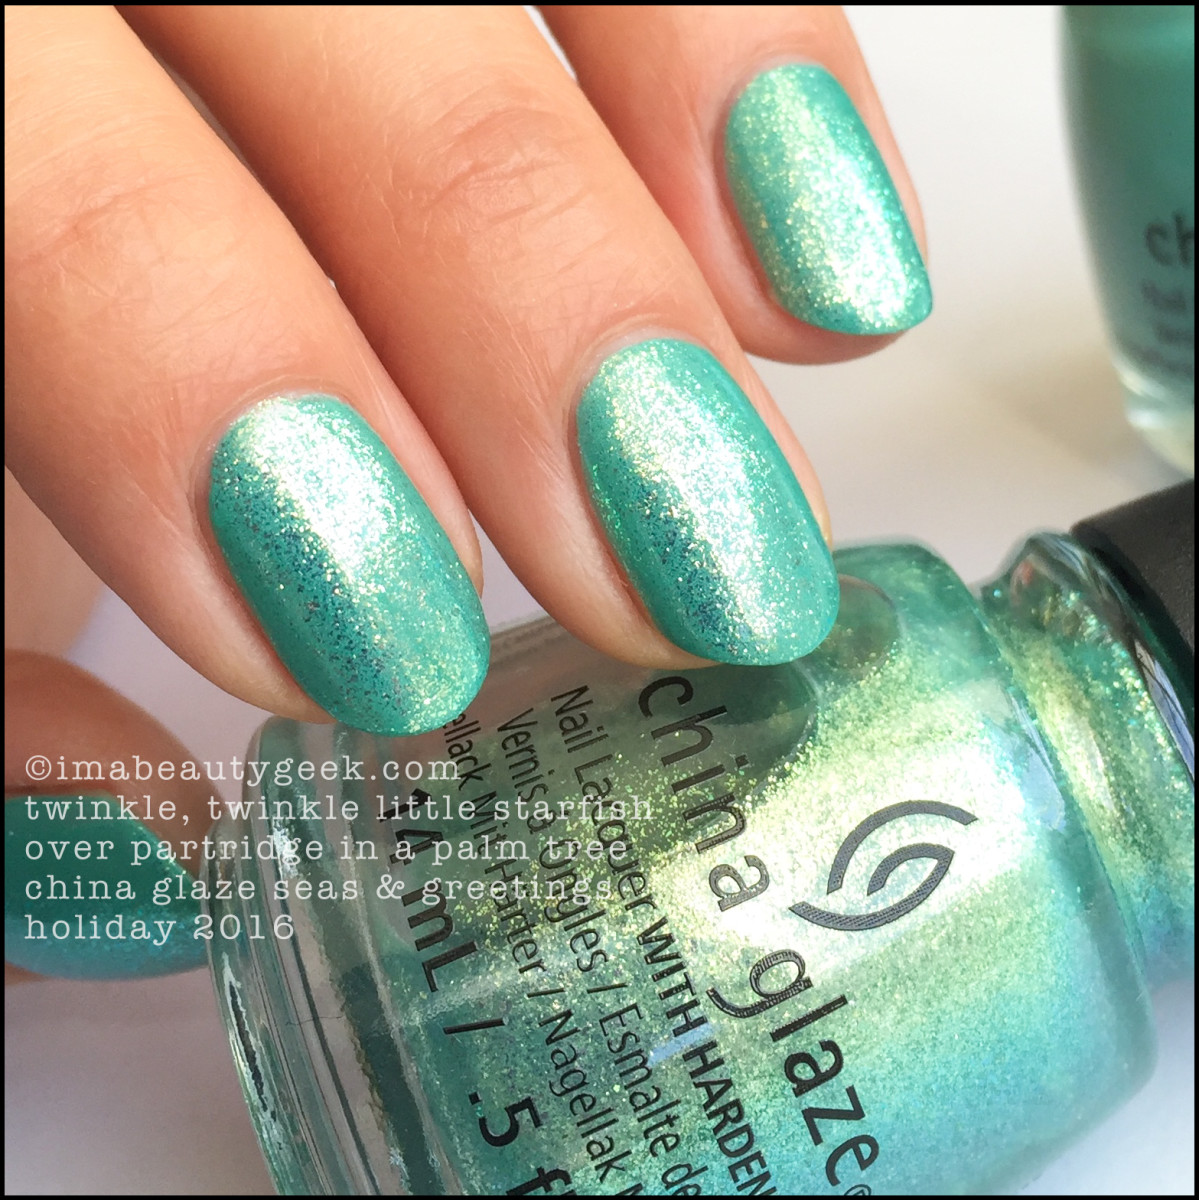 China Glaze Twinkle Twinkle Little Starfish over Partridge_China Glaze Seas Greetings Holiday 2016 Collection Swatches Review